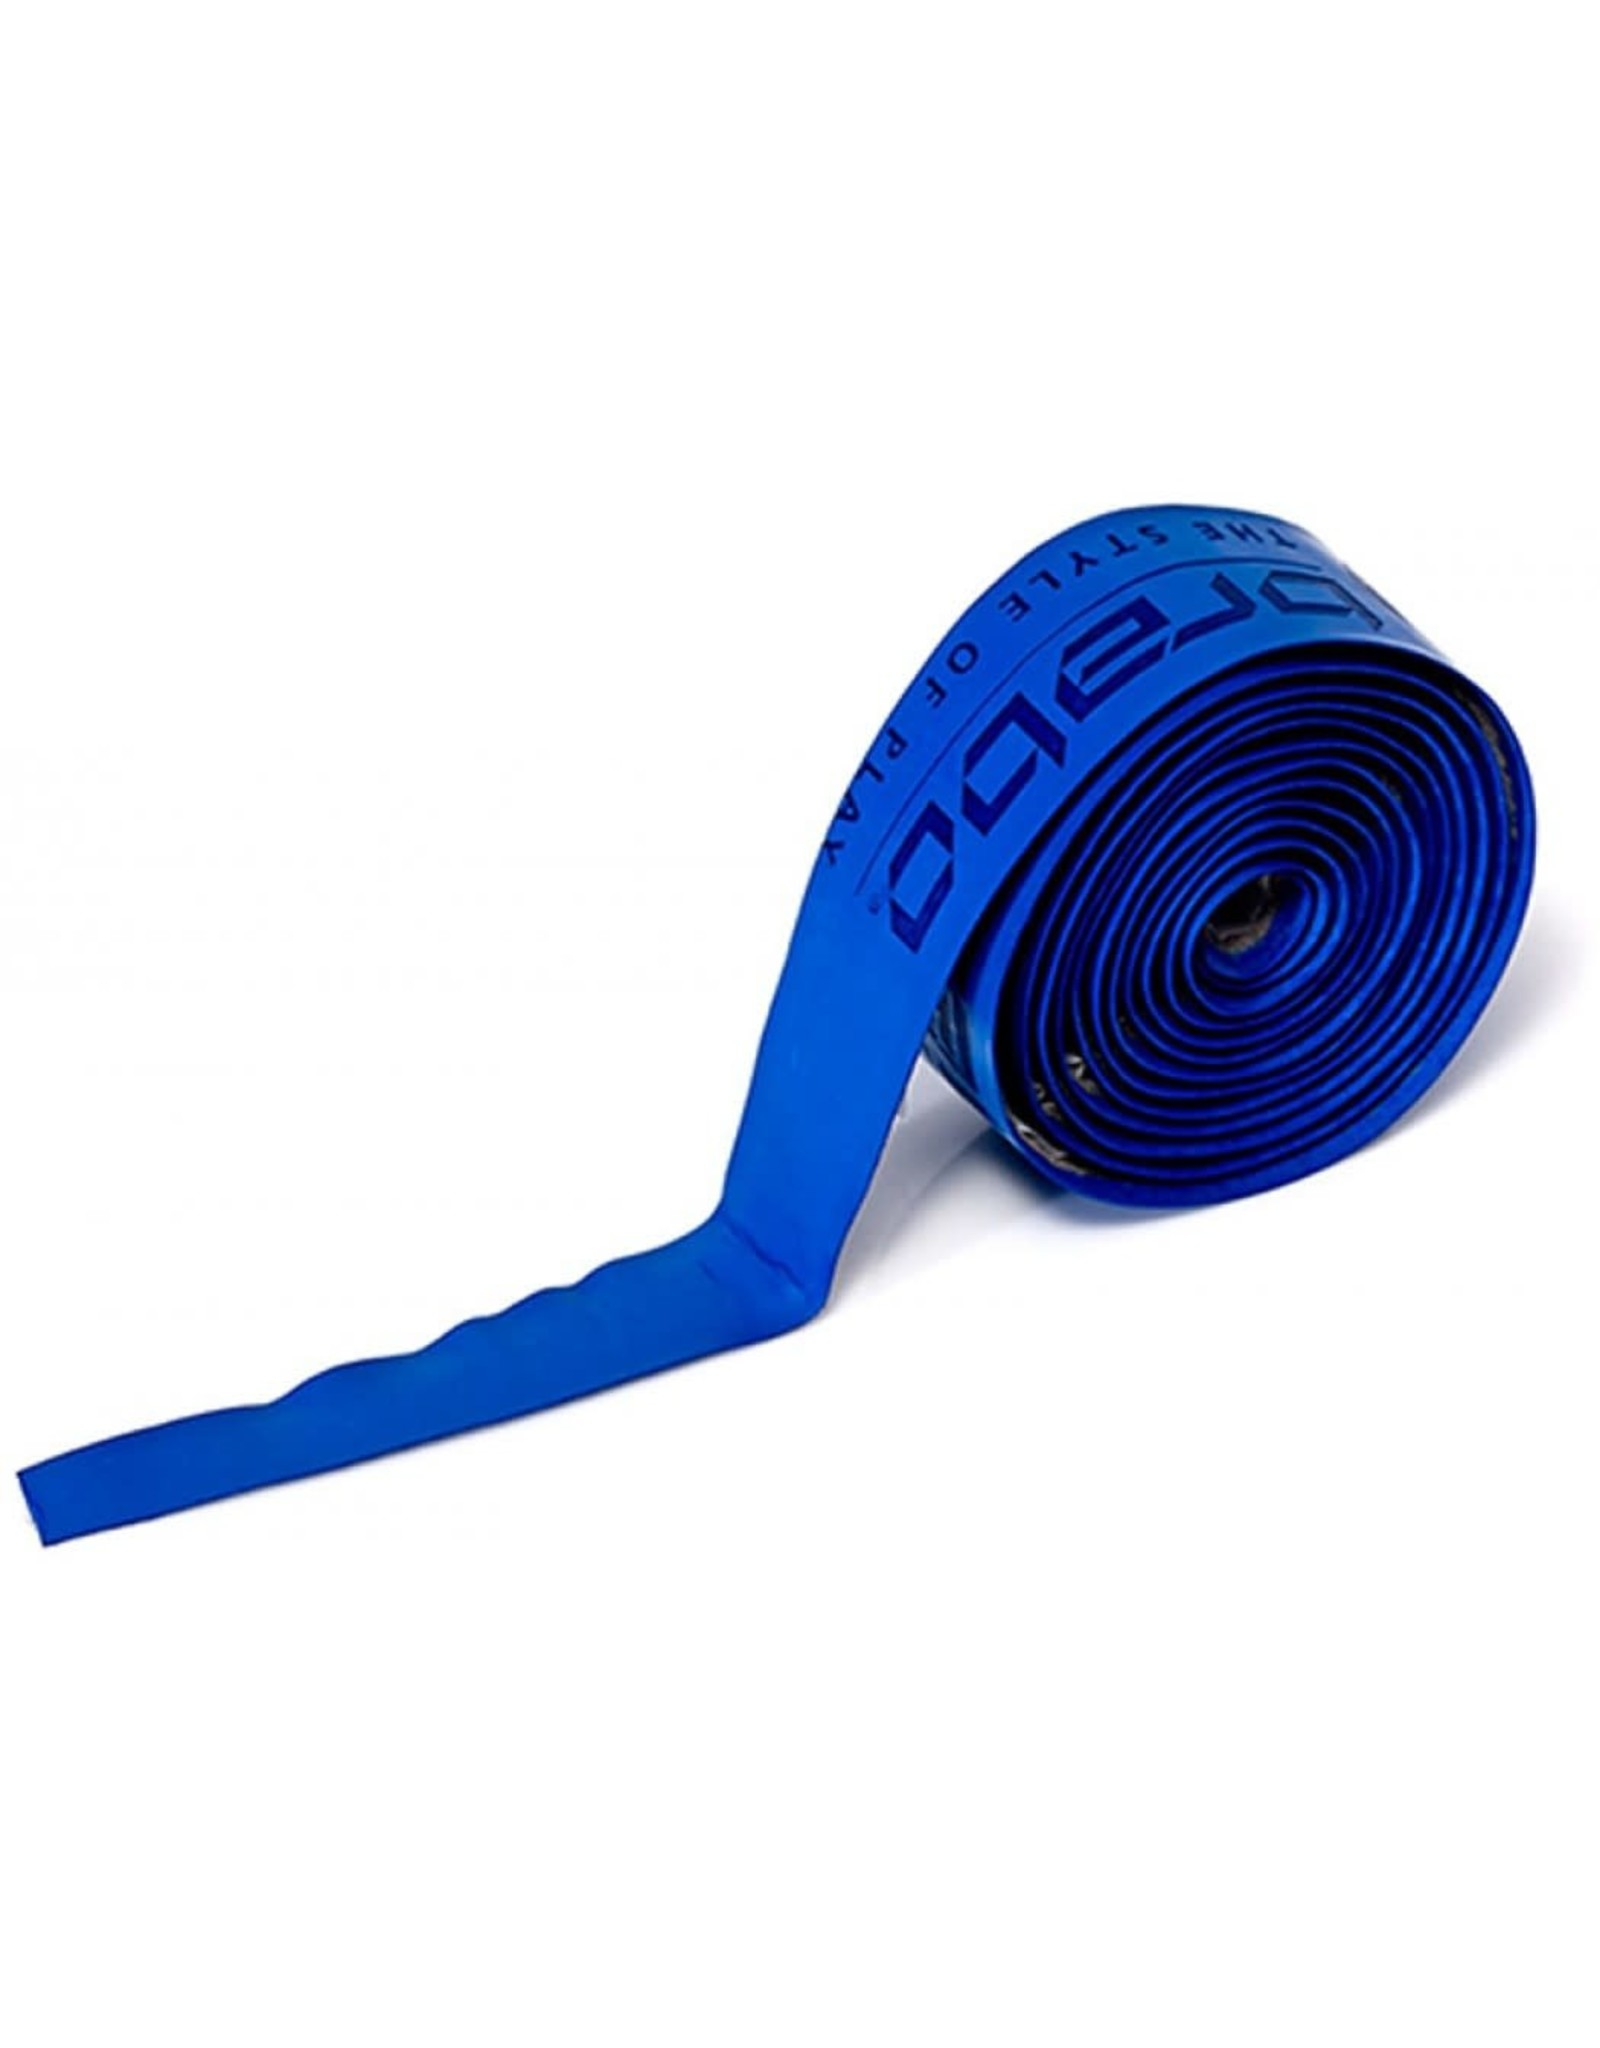 BRABO BRABO CUSHION GRIP